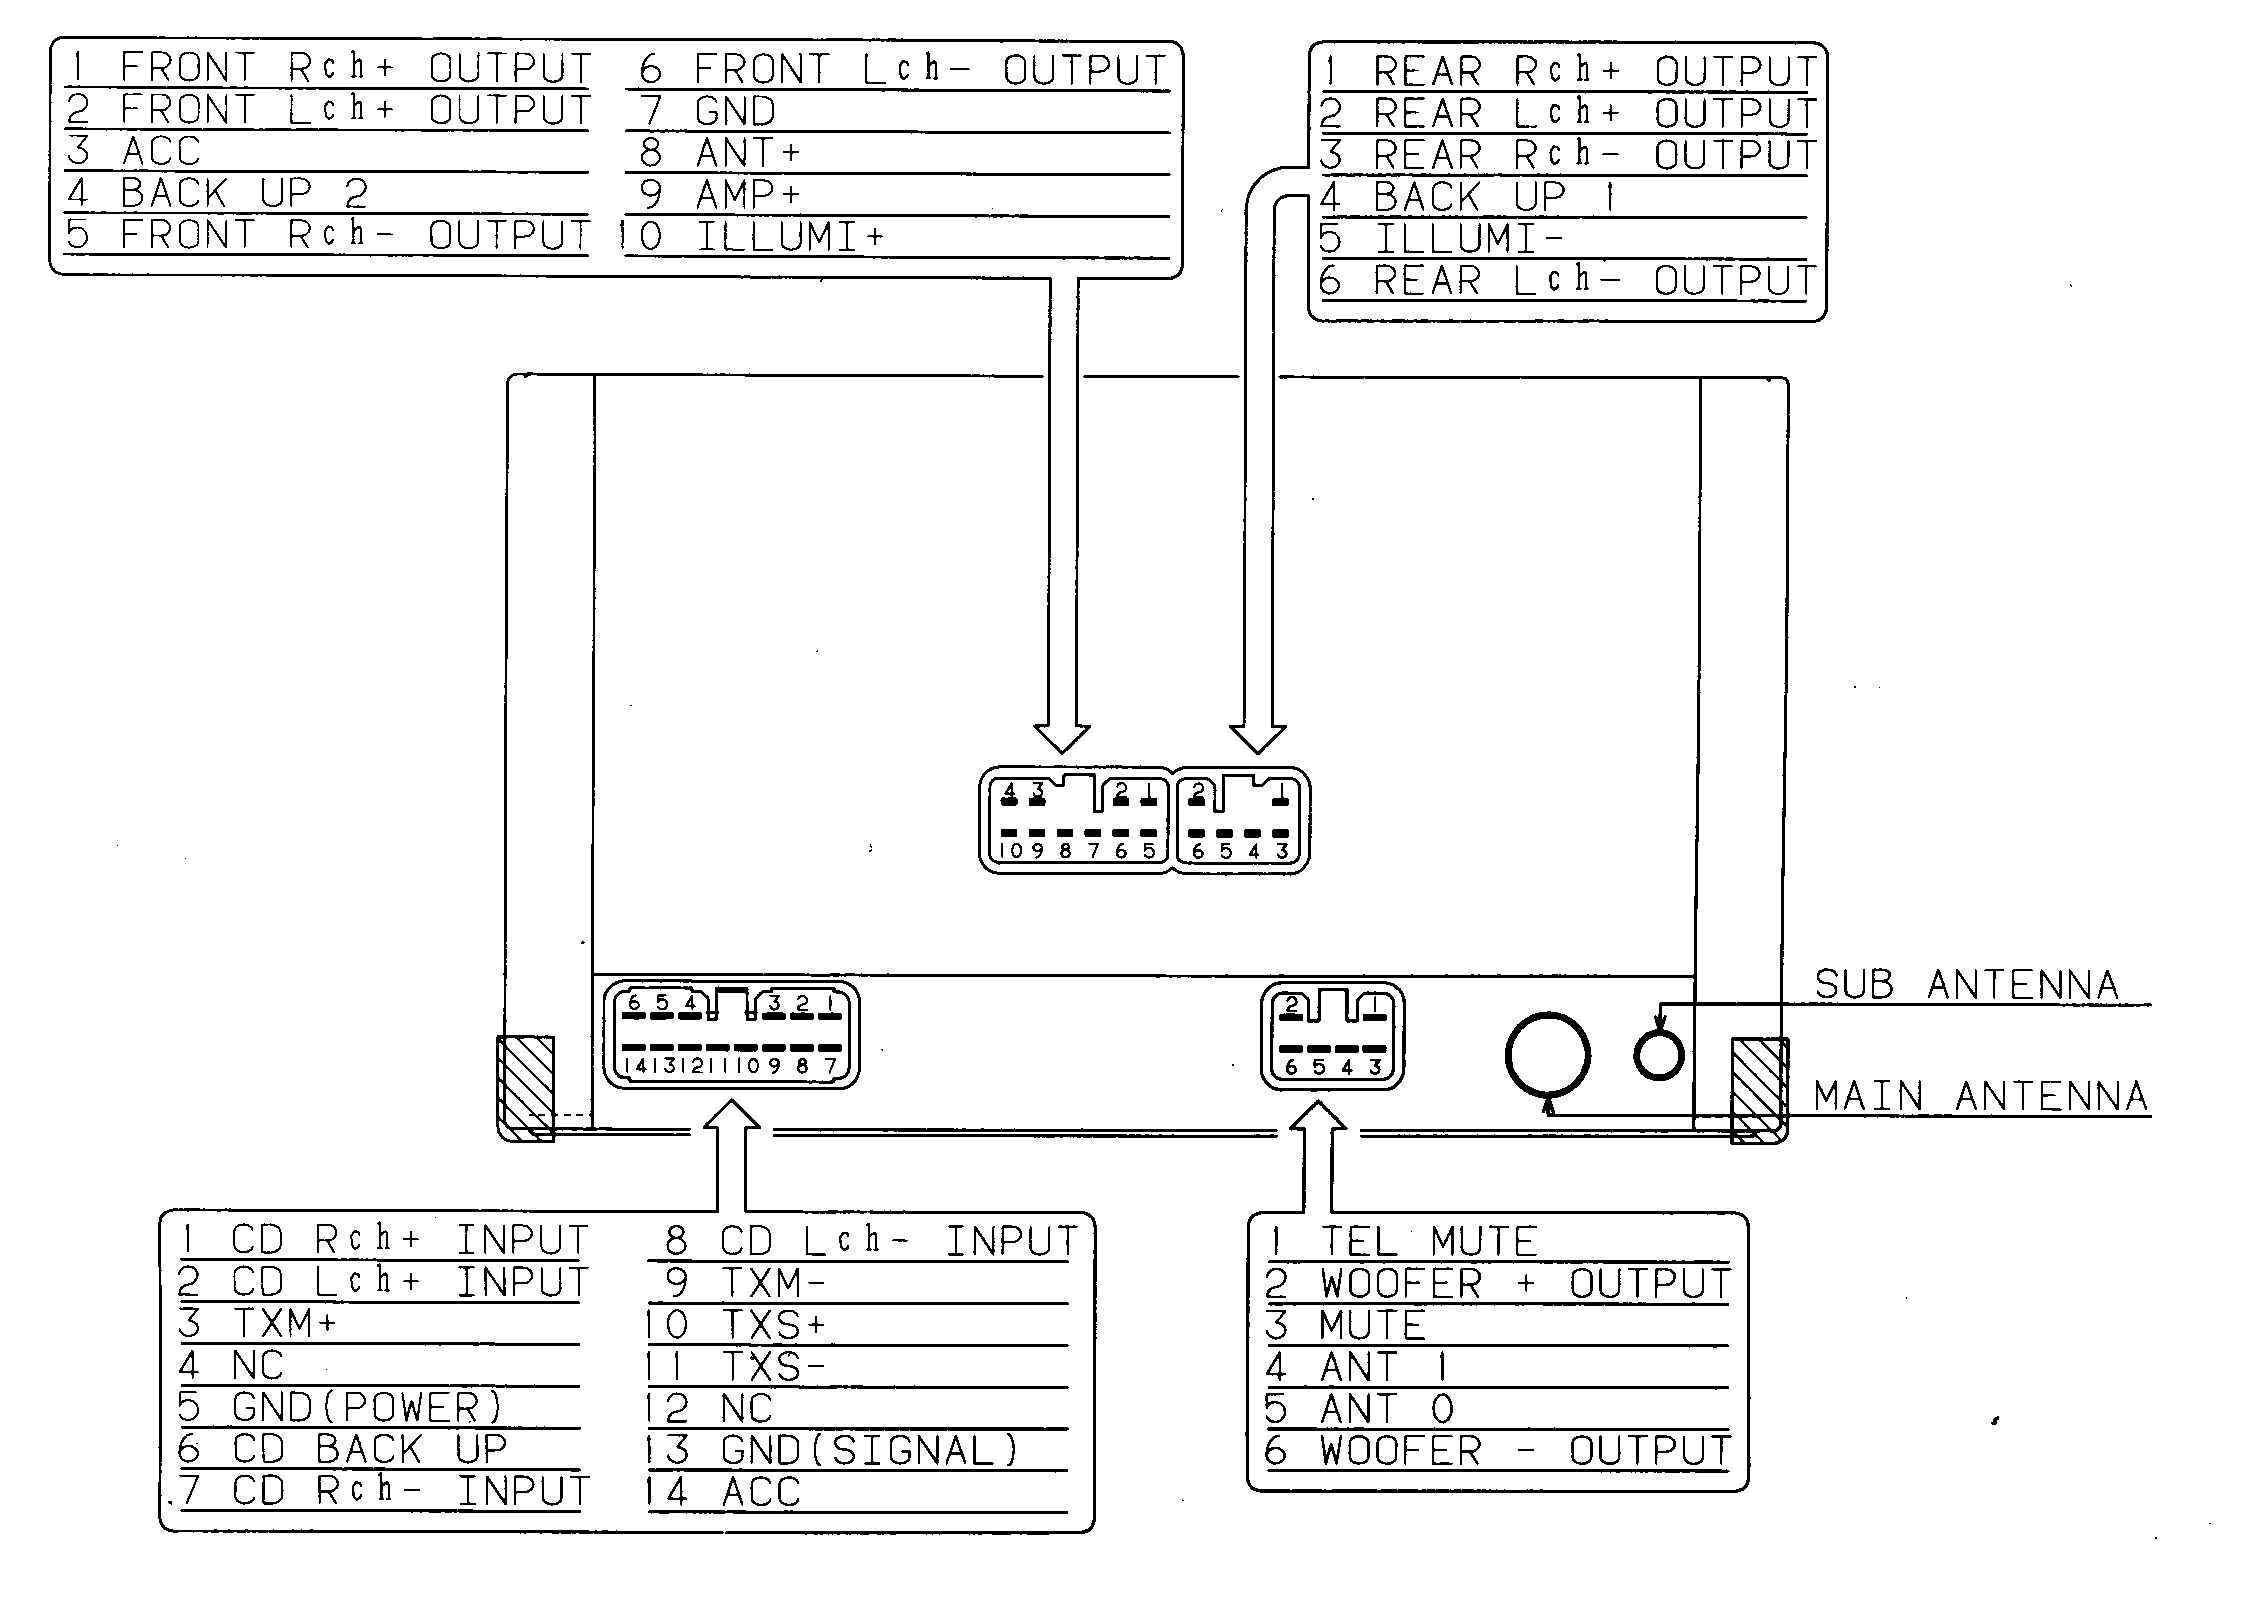 Lexus car stereo wiring diagram harness pinout connector wire 1996 jeep grand cherokee car stereo radio wiring diagram wiring 2002 jeep grand cherokee radio wiring diagram at virtualis.co